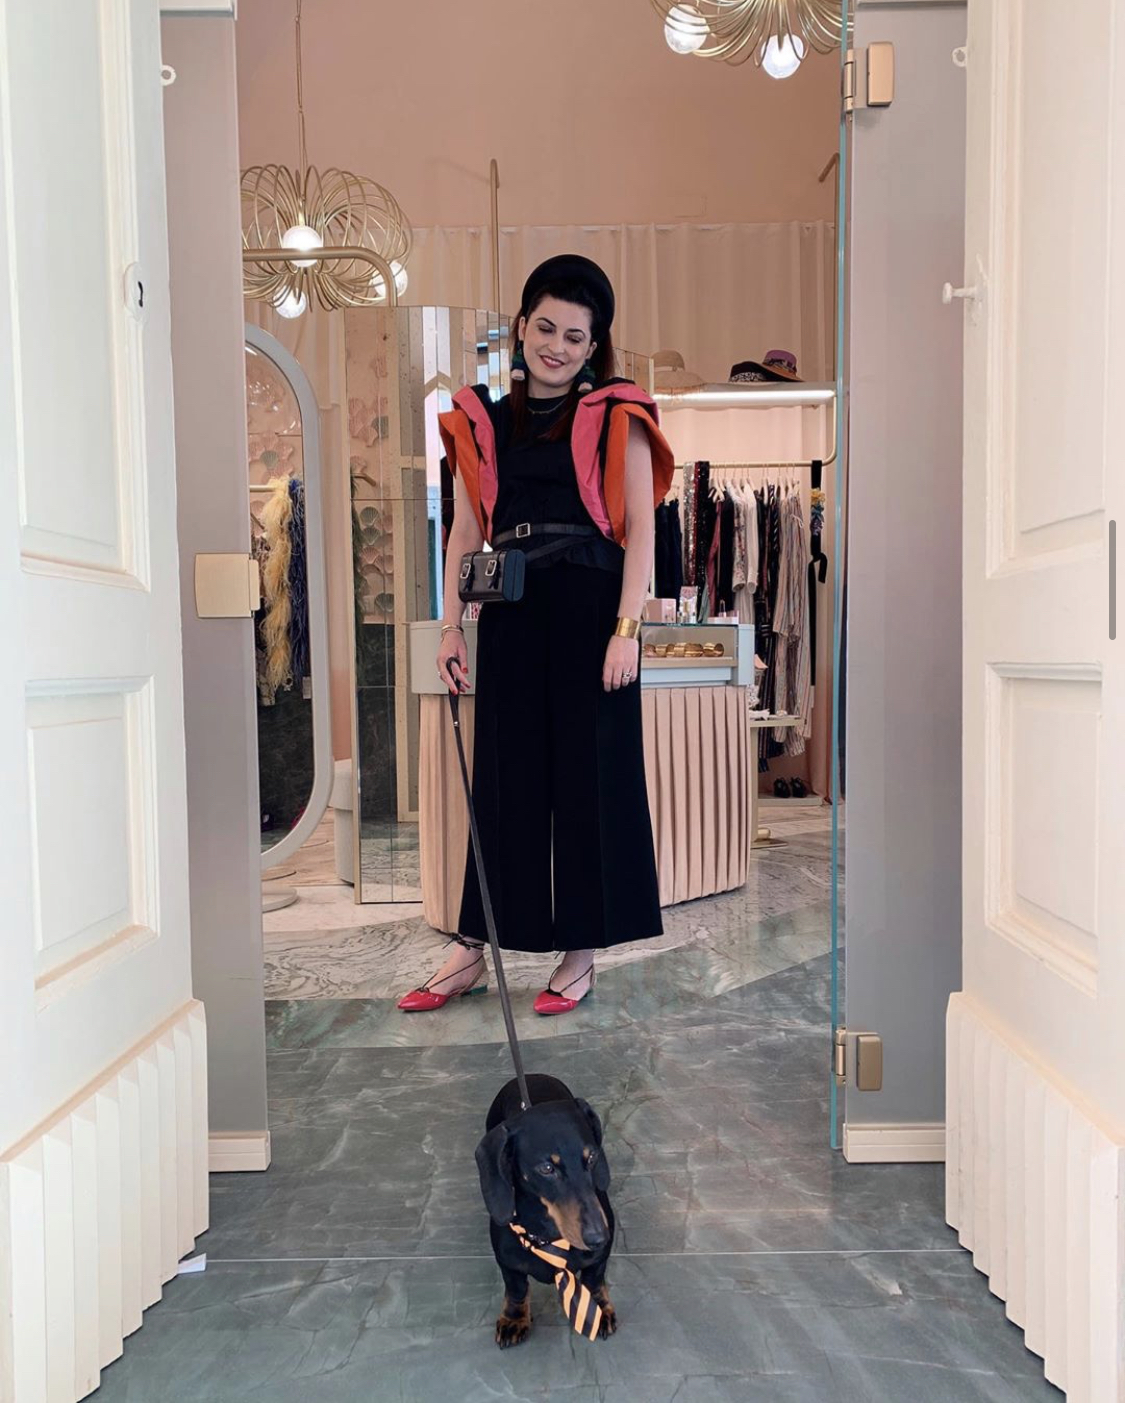 Marilla Avino with the  ODP Bici Bag  at the entrance of The Pink Closet